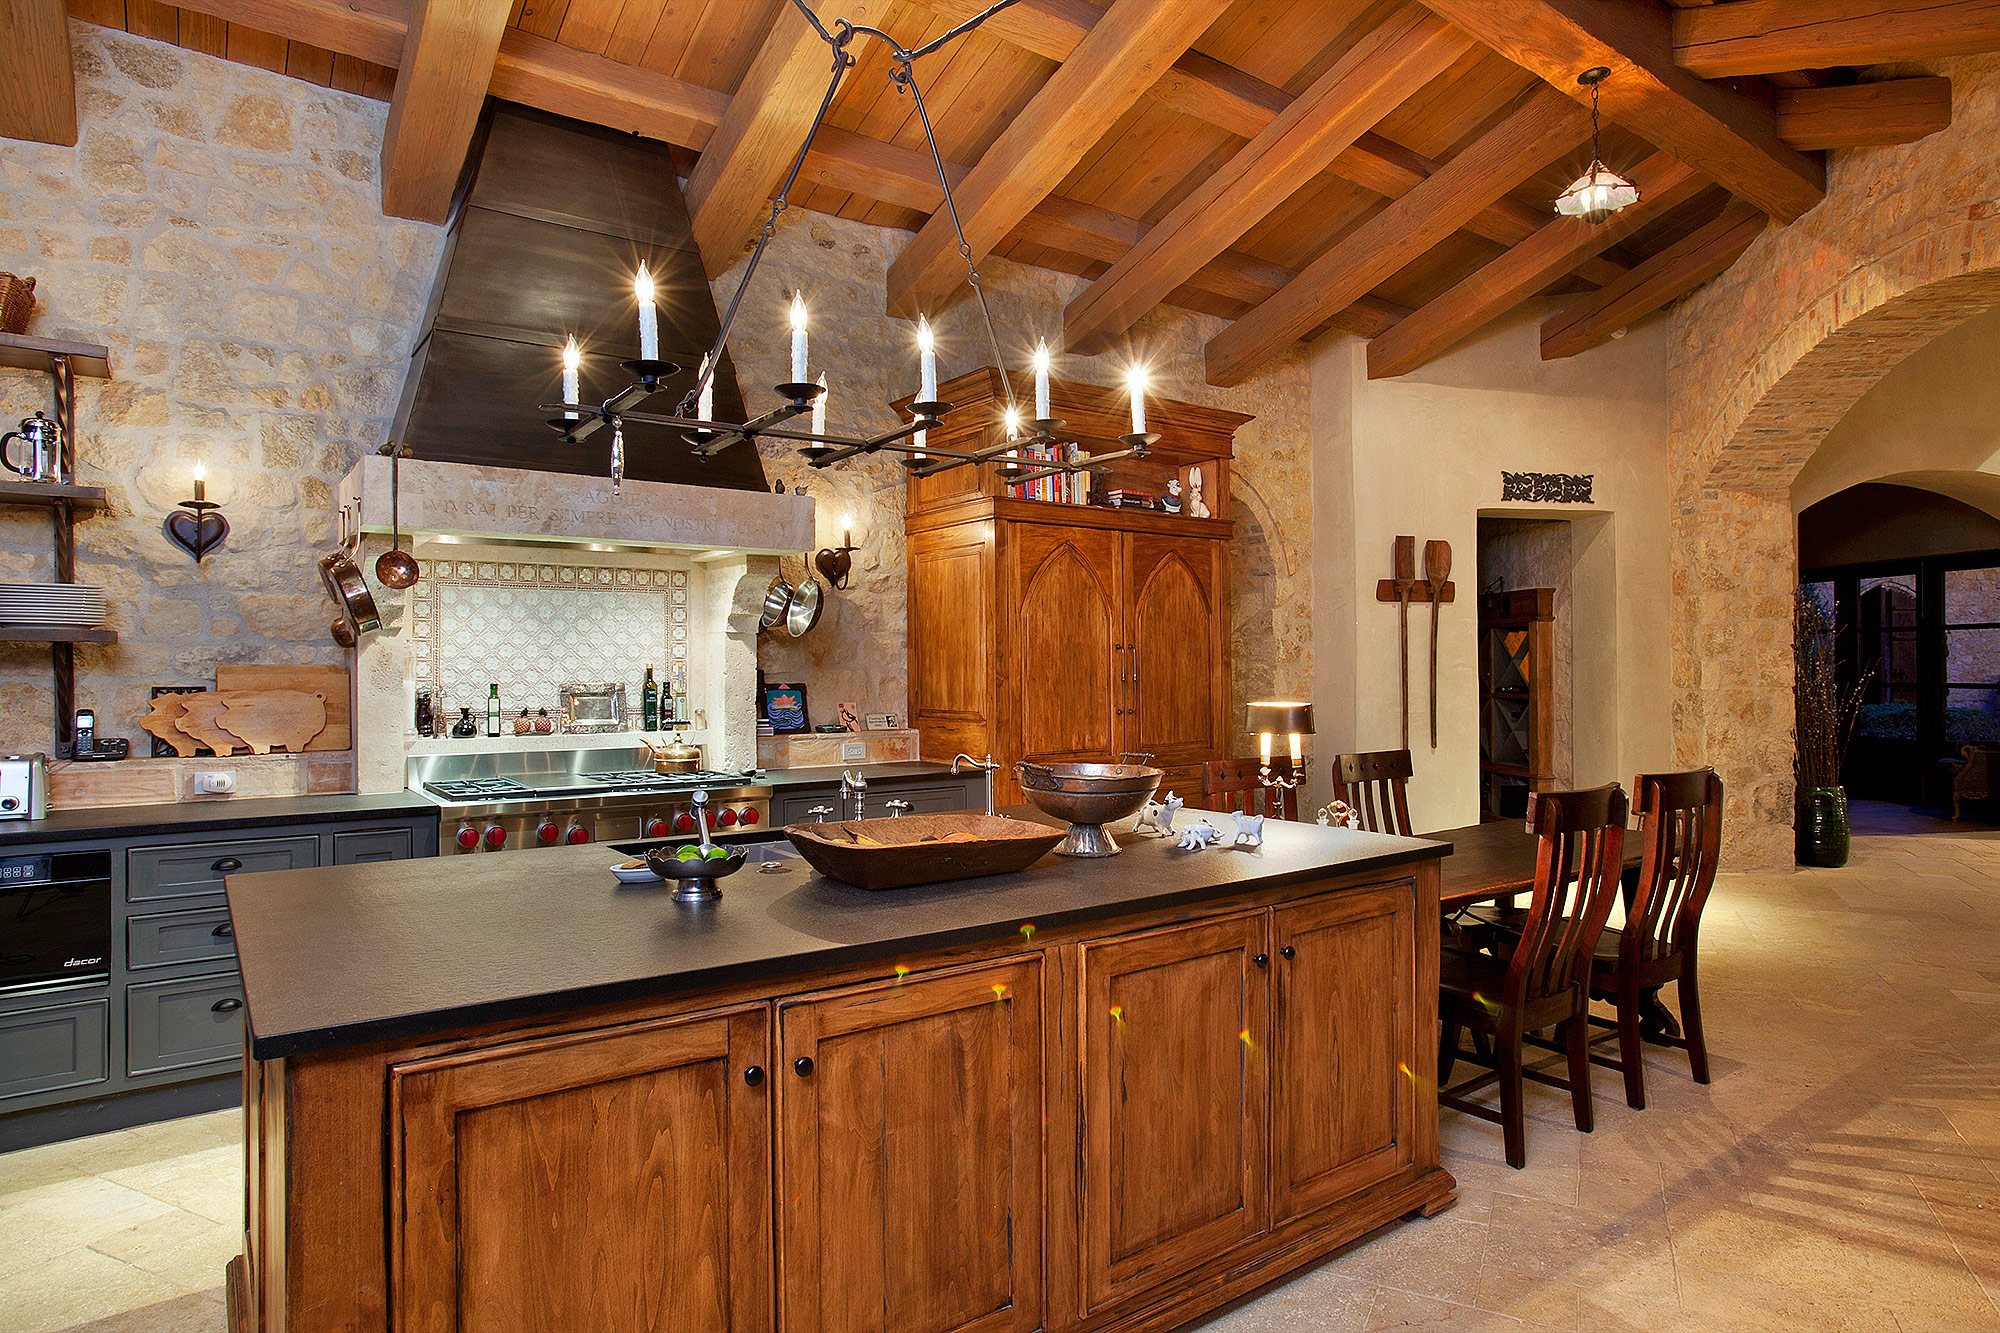 Masino Residence Kitchen Shot 2